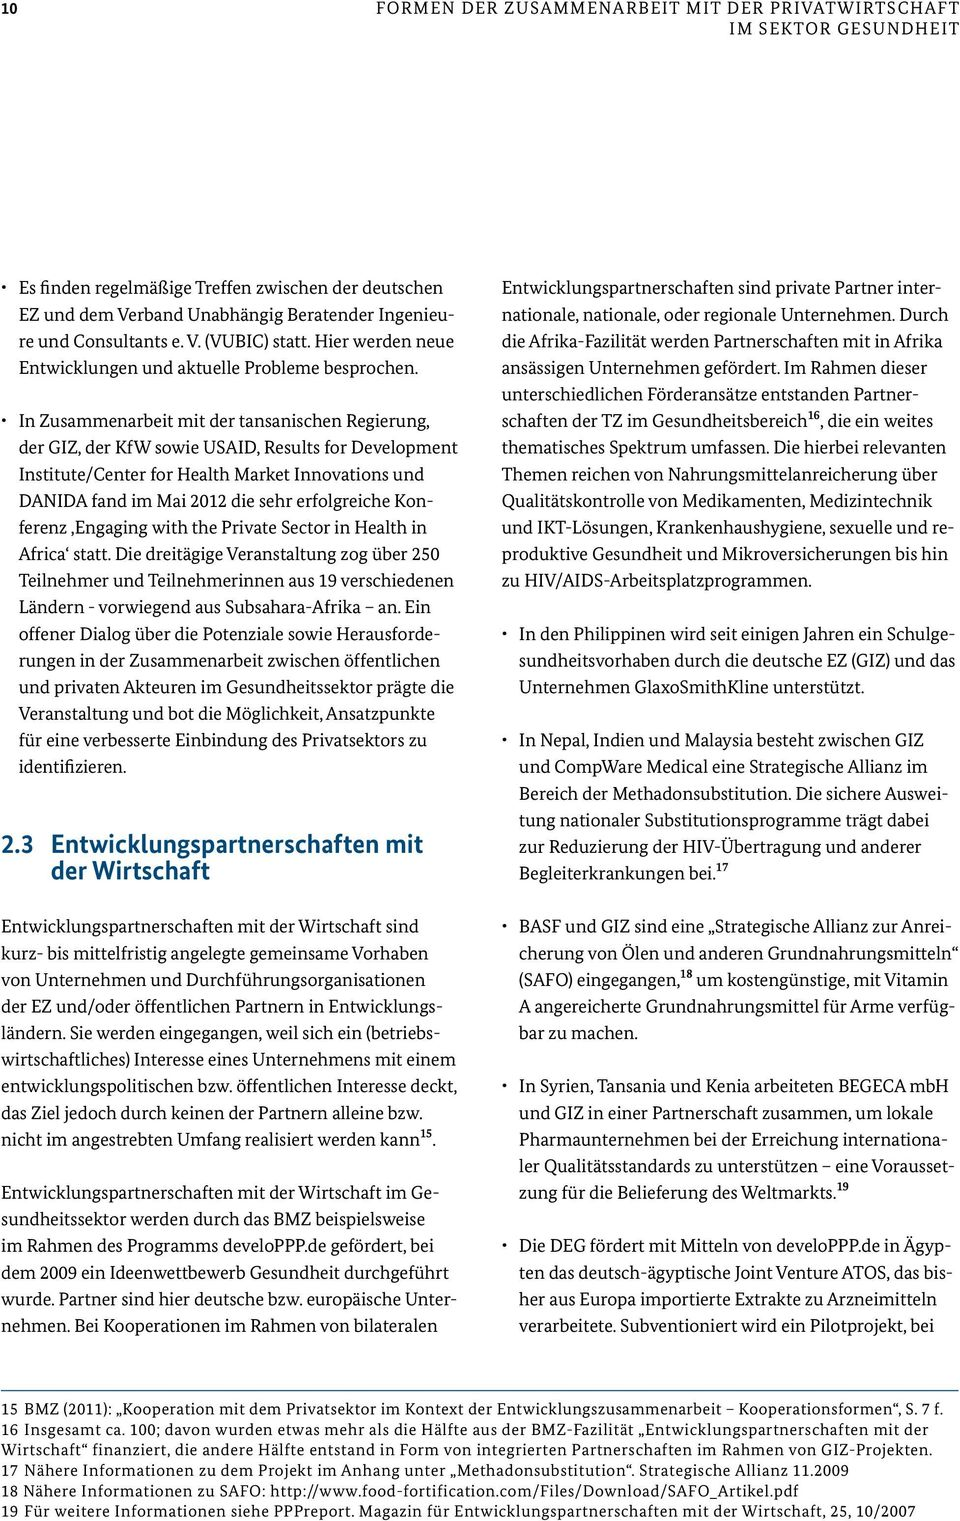 In Zusammenarbeit mit der tansanischen Regierung, der GIZ, der KfW sowie USAID, Results for Development Institute/Center for Health Market Innovations und DANIDA fand im Mai 2012 die sehr